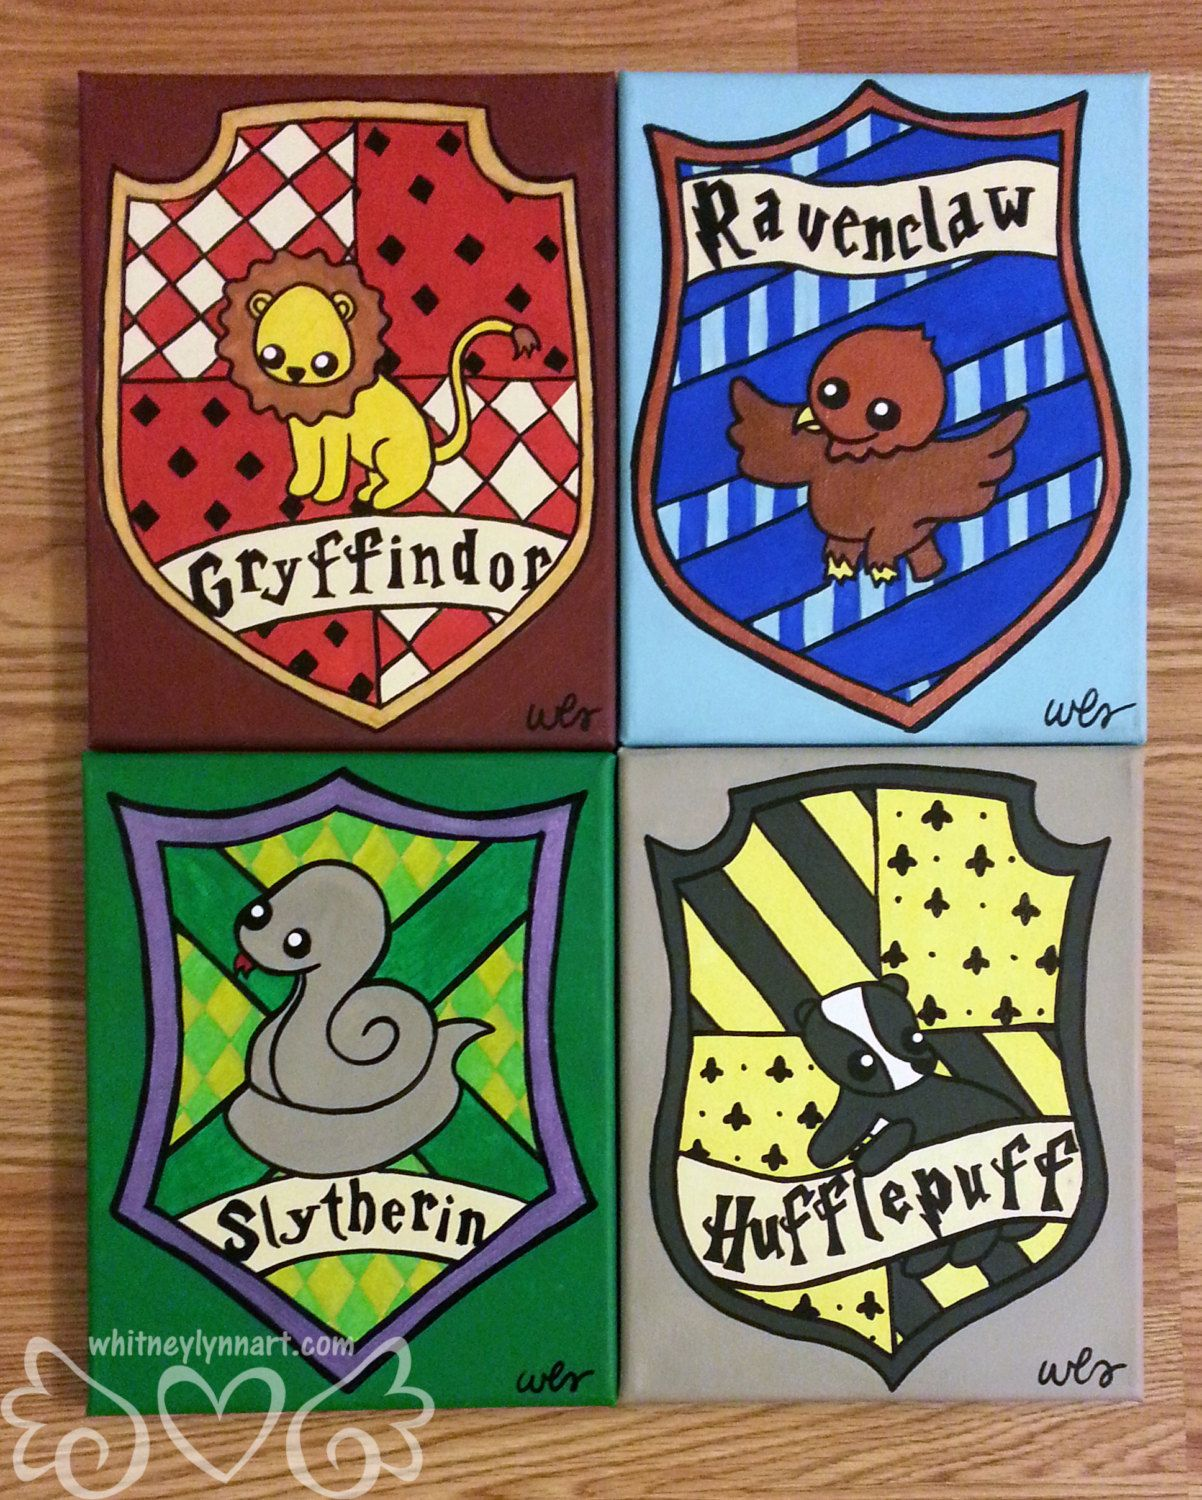 Harry Potter Hufflepuff House Crest By Whitneylynnart On Etsy 6500 I Had The Opportunity To Meet Artist And Her Personality Is All Over These